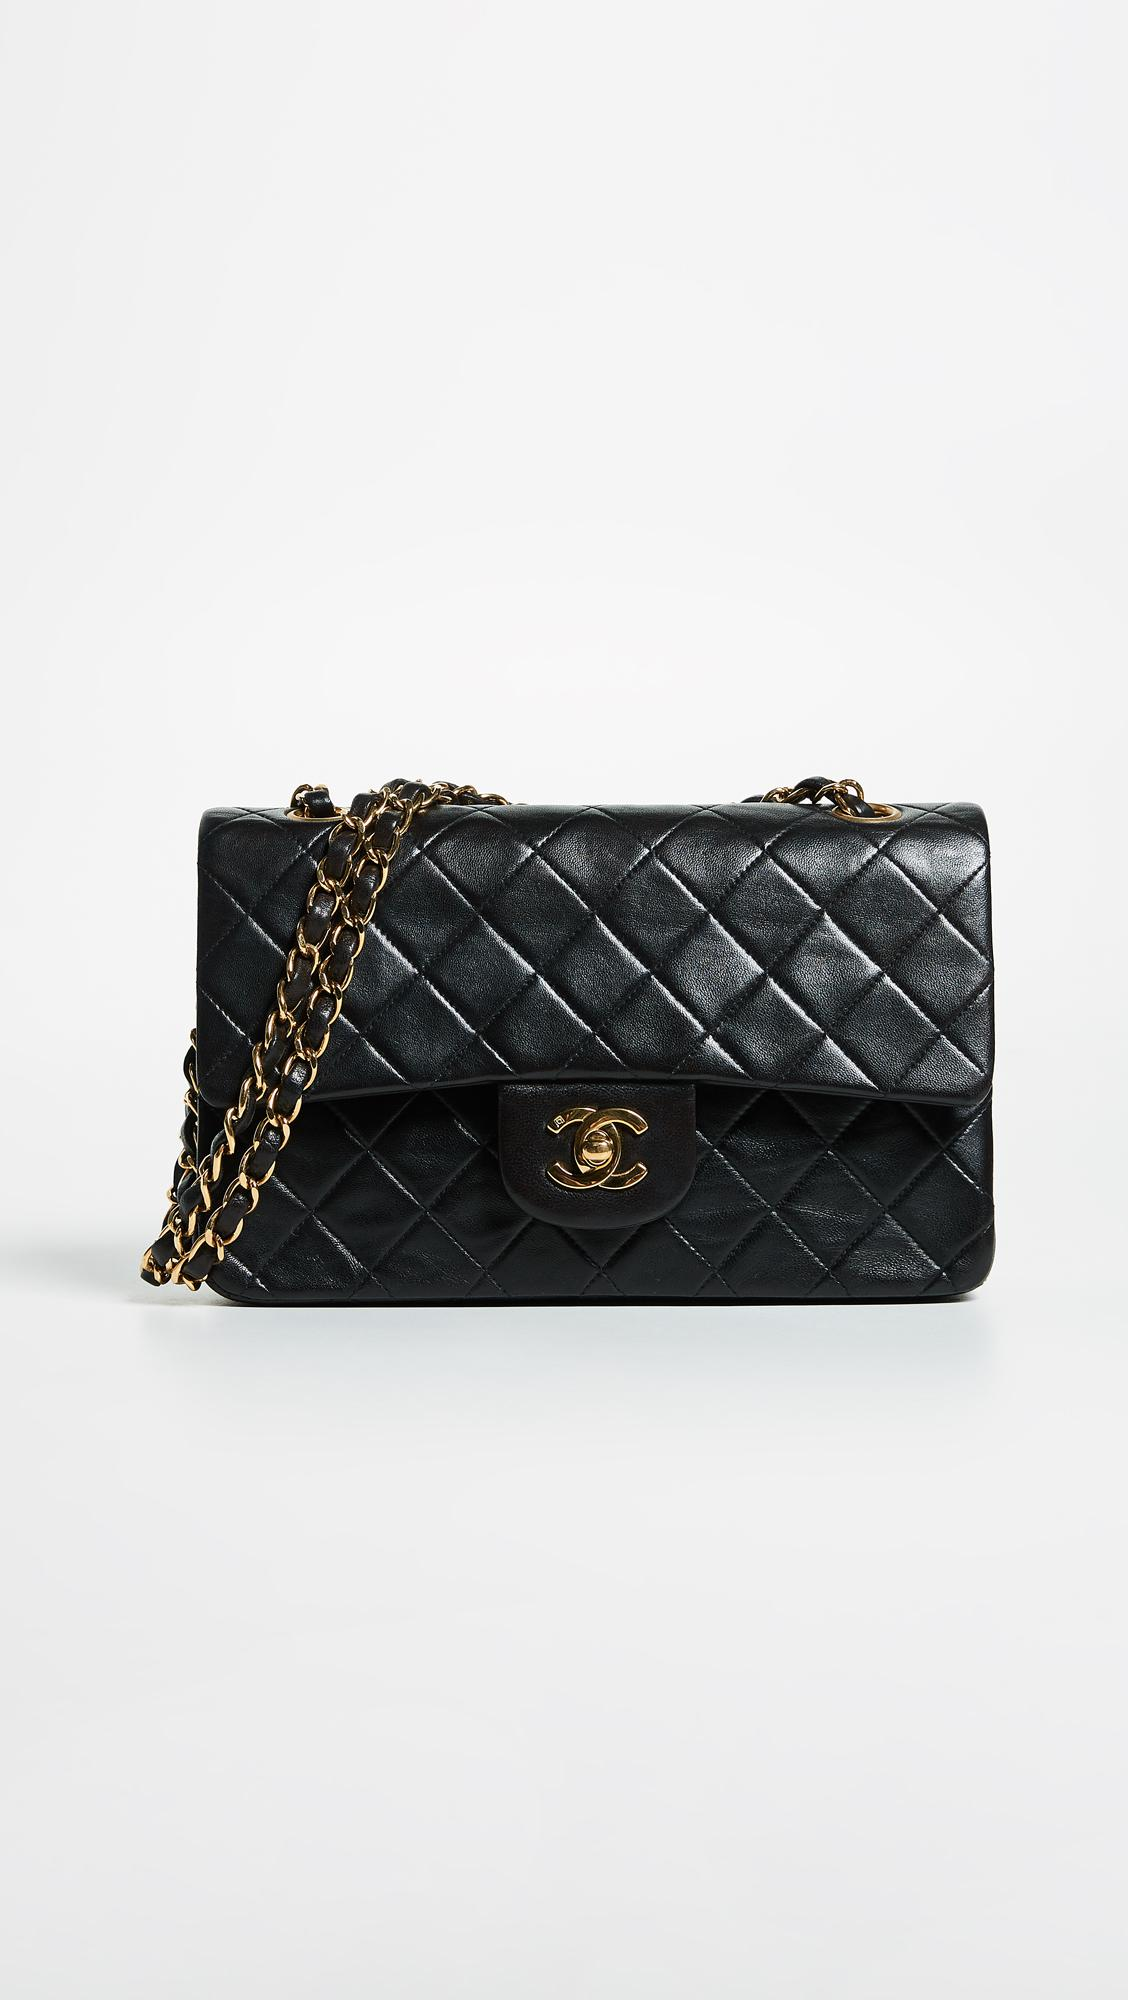 fbcd3a2c1fd5 What Goes Around Comes Around - Black Chanel 2.55 Classic Flap Bag - Lyst.  View fullscreen